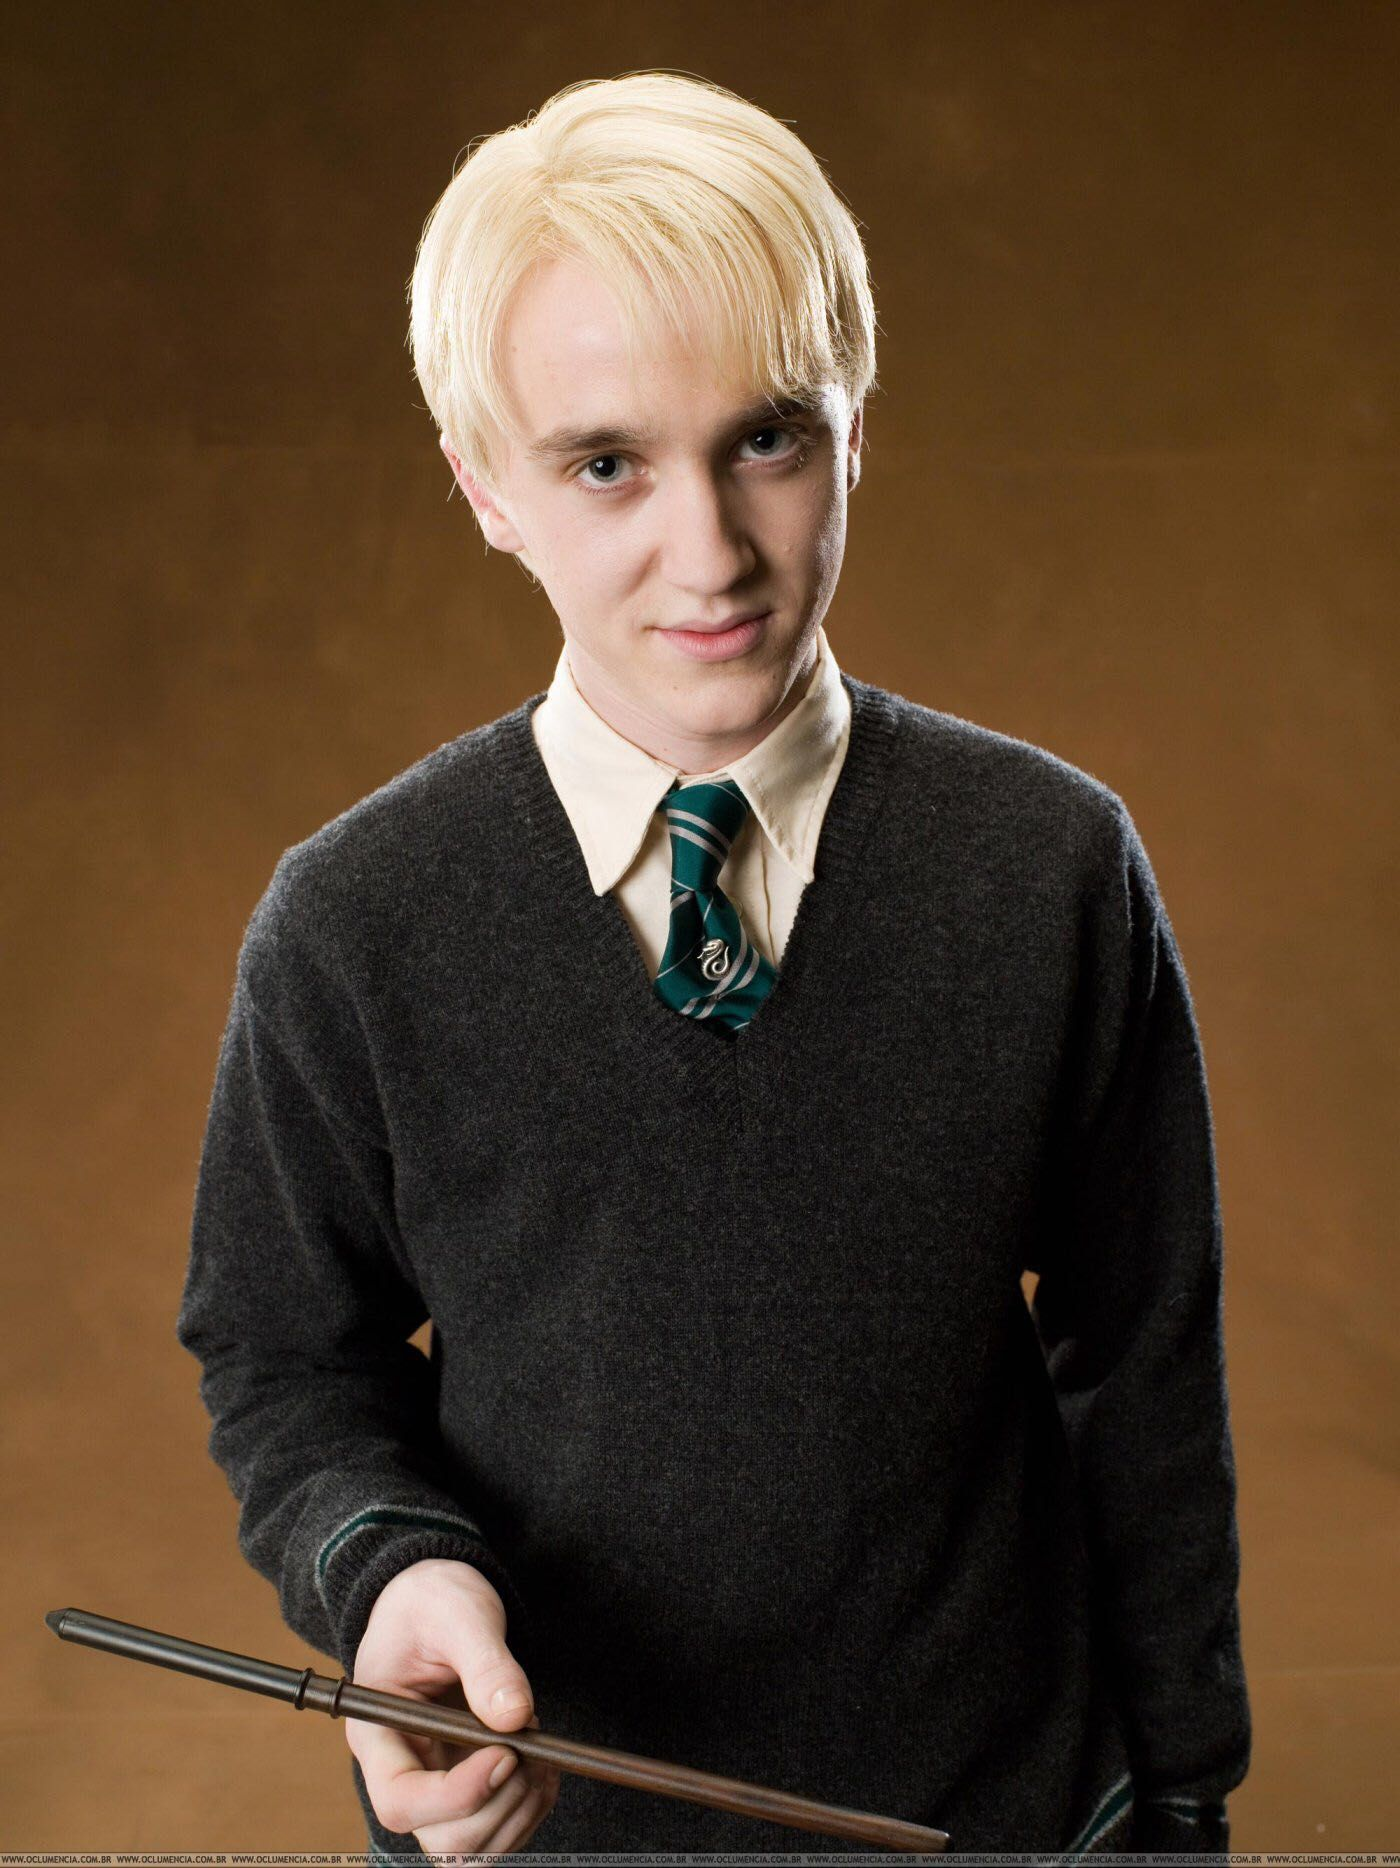 Harry Potter characters x reader - Draco x reader - WattpadYoung James Potter X Reader